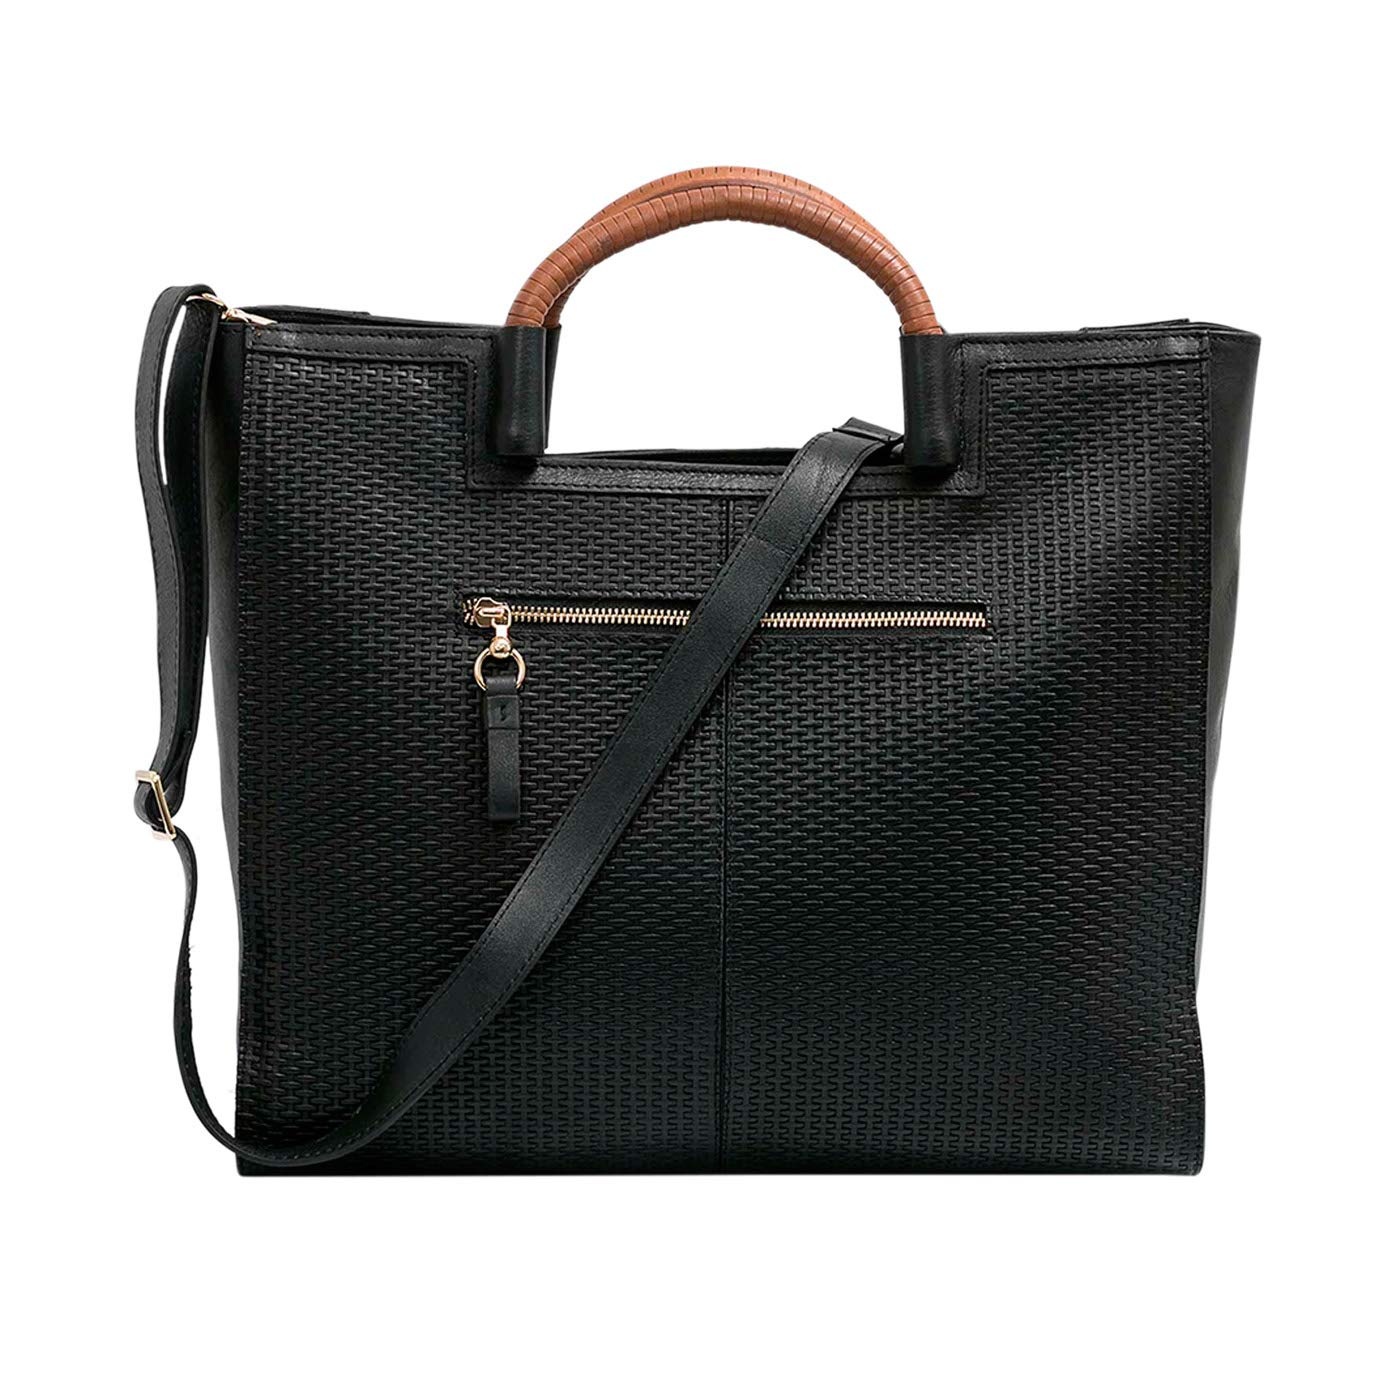 Amazon.com | VÉLEZ 20666 Women Leather Business Briefcase | Maletín De Cuero Mujer Black | Briefcases